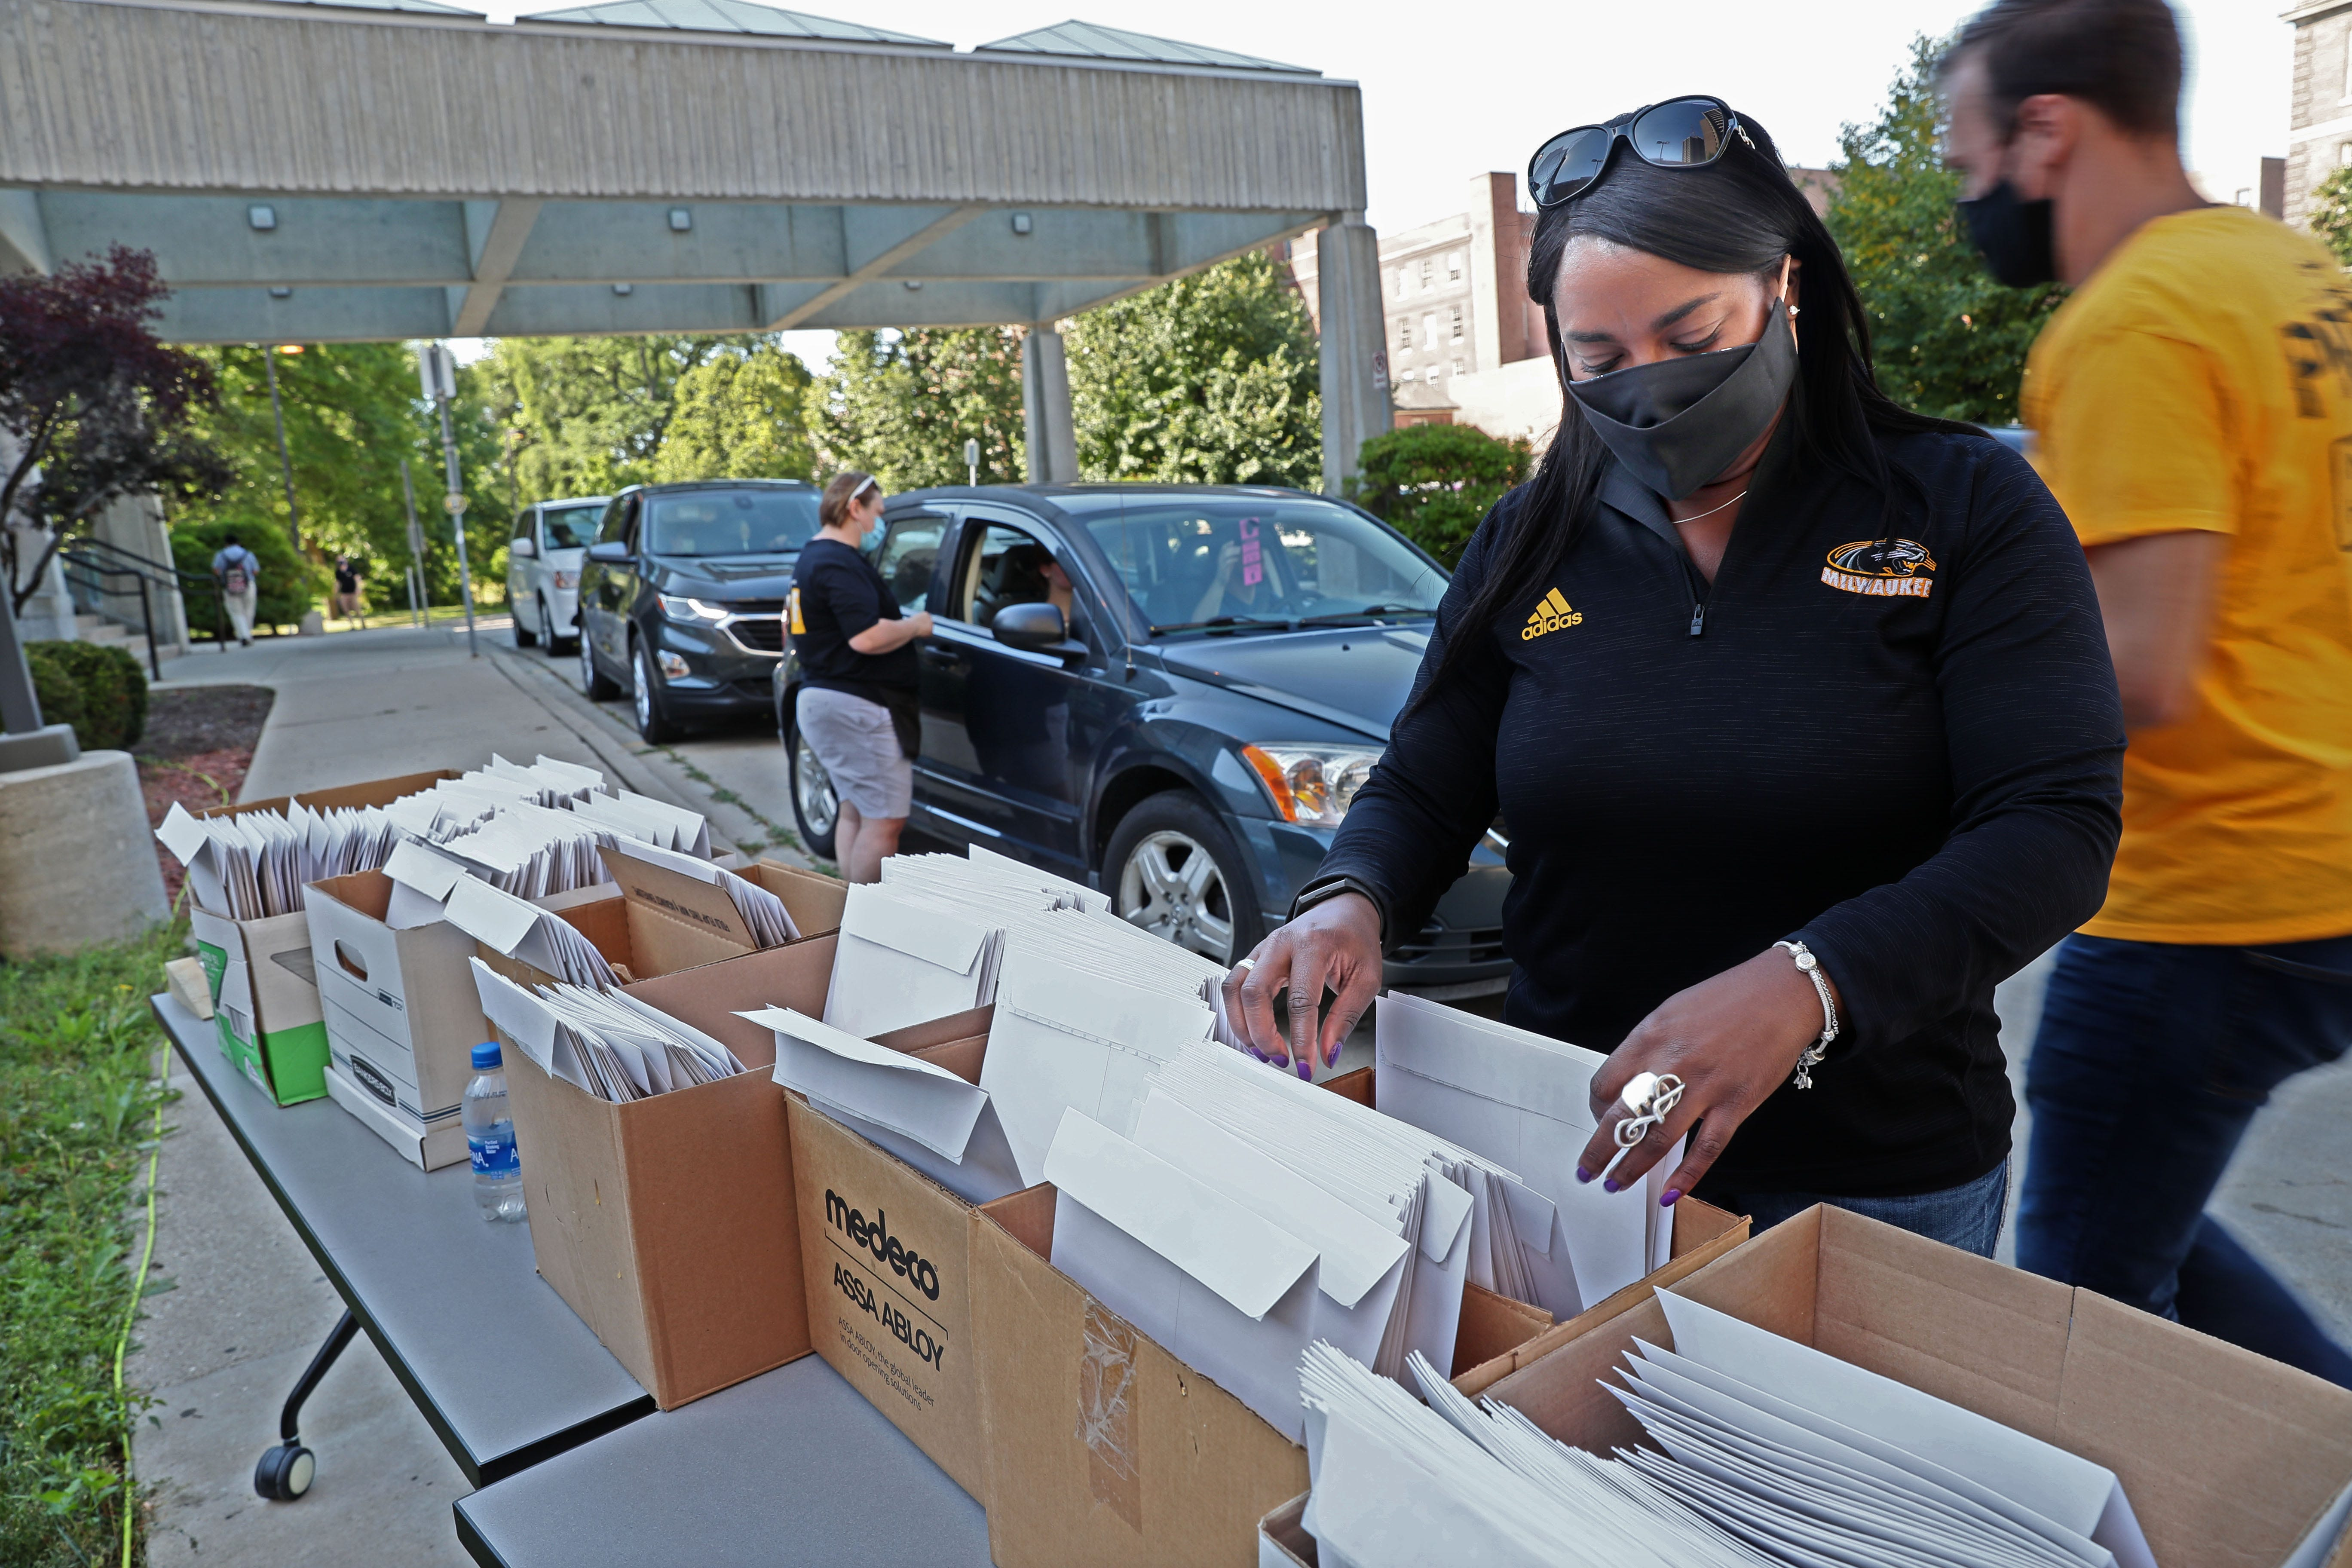 """Arcetta Knautz, director of university housing, helps as students move in at the University of Wisconsin-Milwaukee's Sandburg Residence Hall under COVID-19 restrictions. """"It's sort of like a puzzle,"""" Knautz said. """"We can only have so many people moving in on the hour, on the half hour."""""""